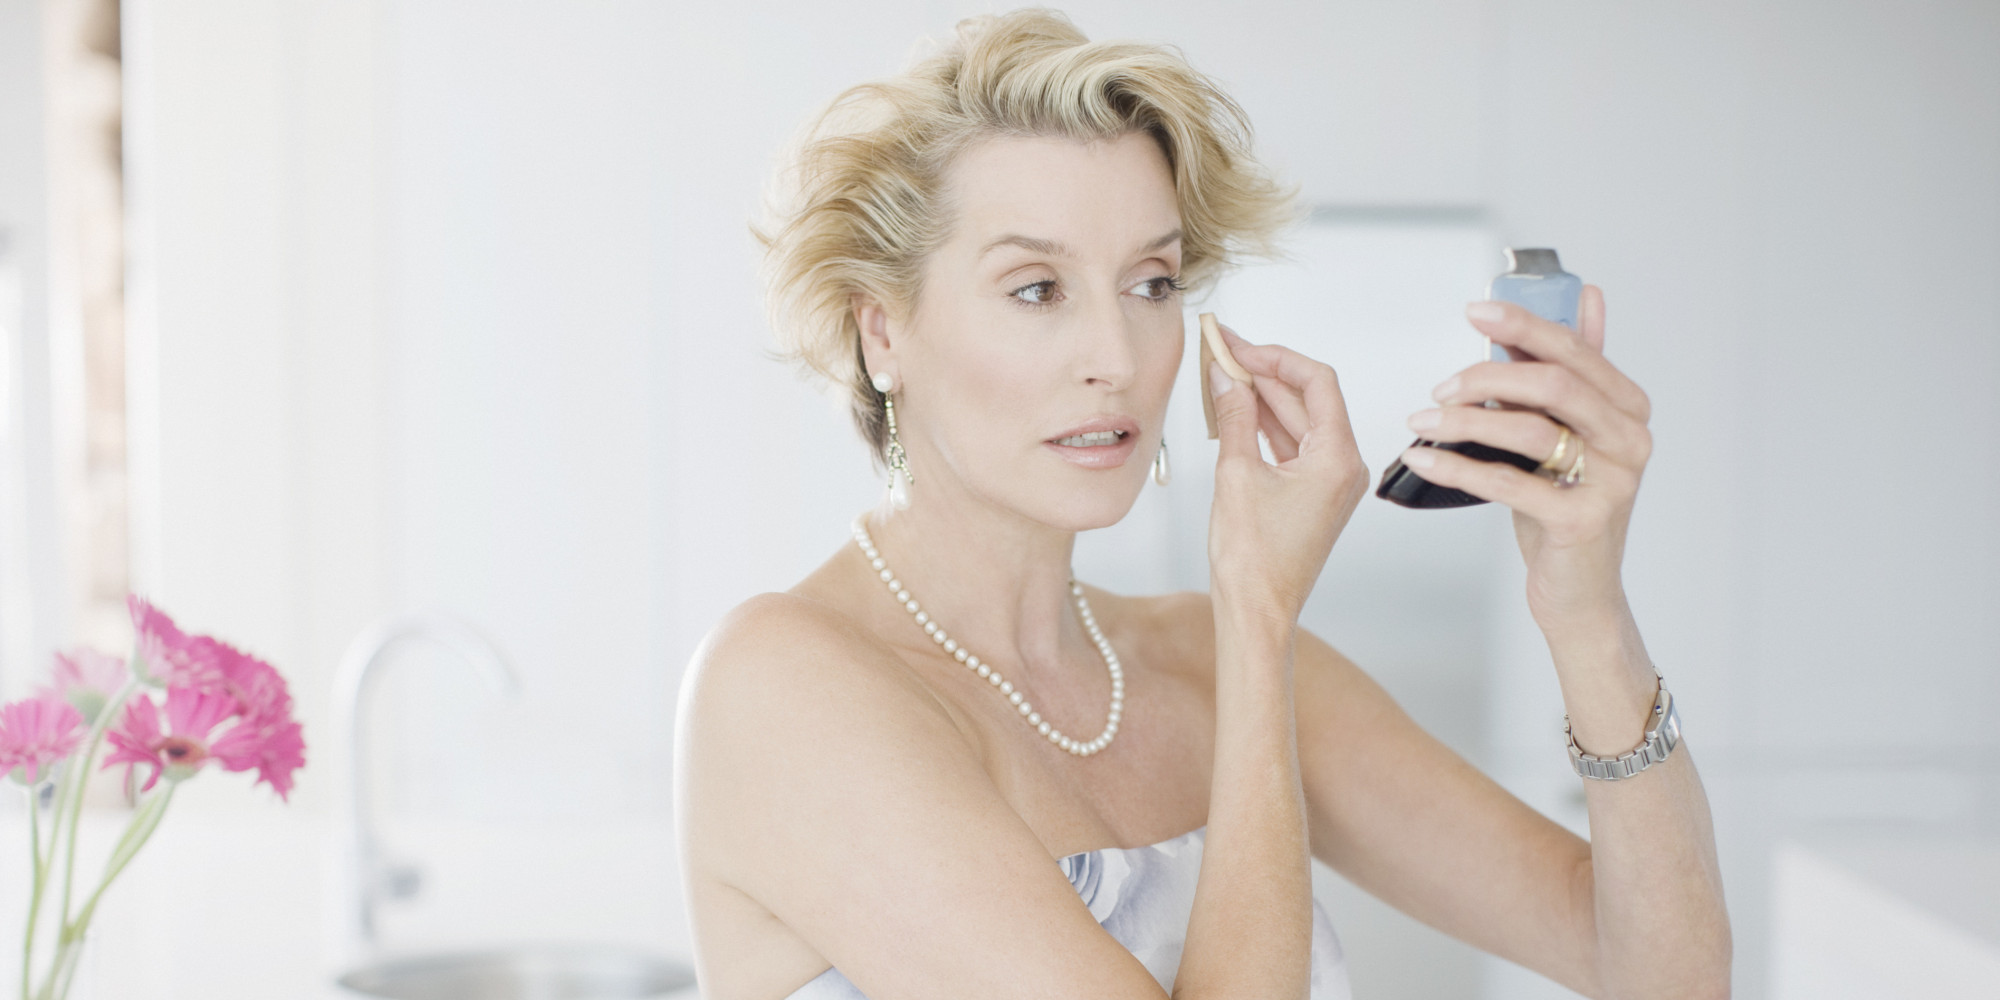 eye make-up tips championing women finished 50